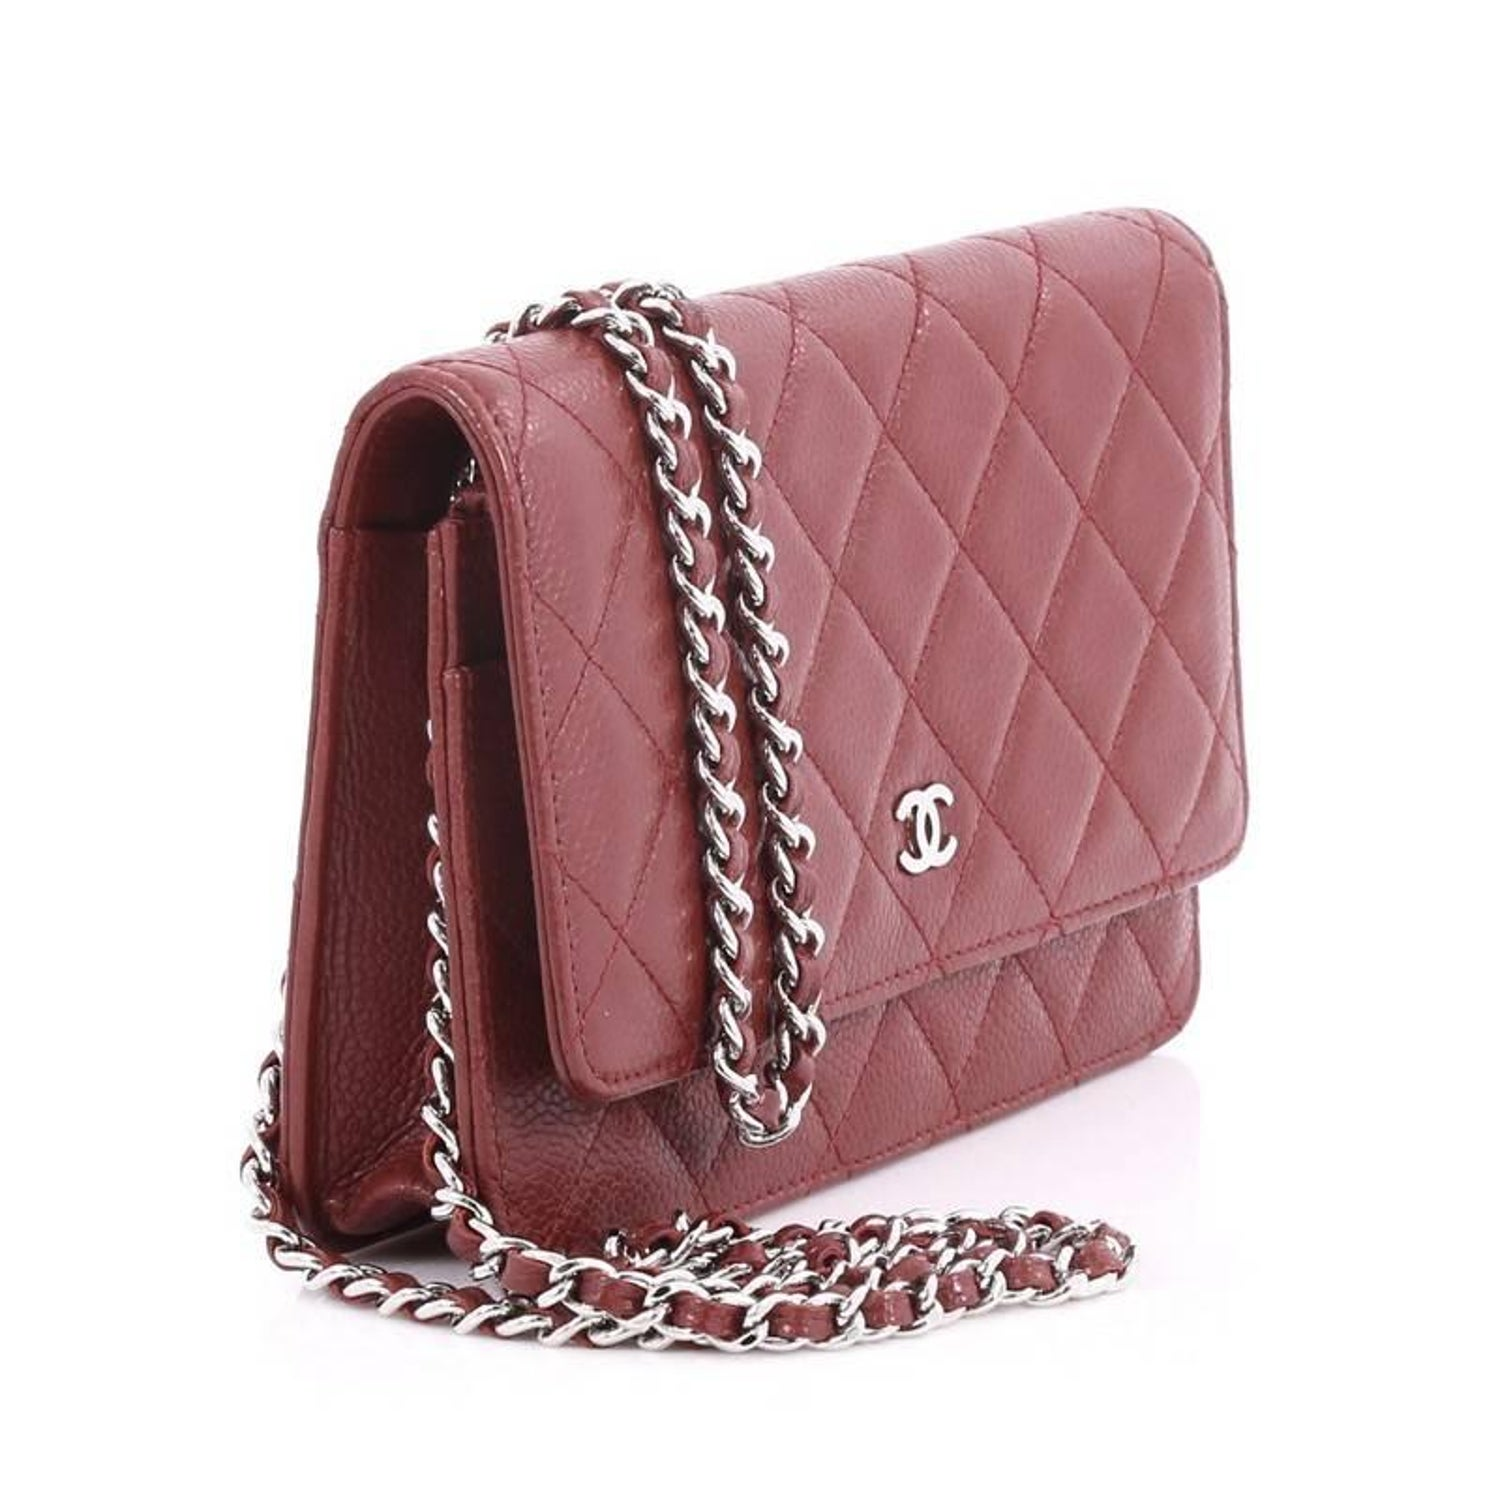 1ca8c2031befbb Chanel Wallet on Chain Quilted Caviar at 1stdibs